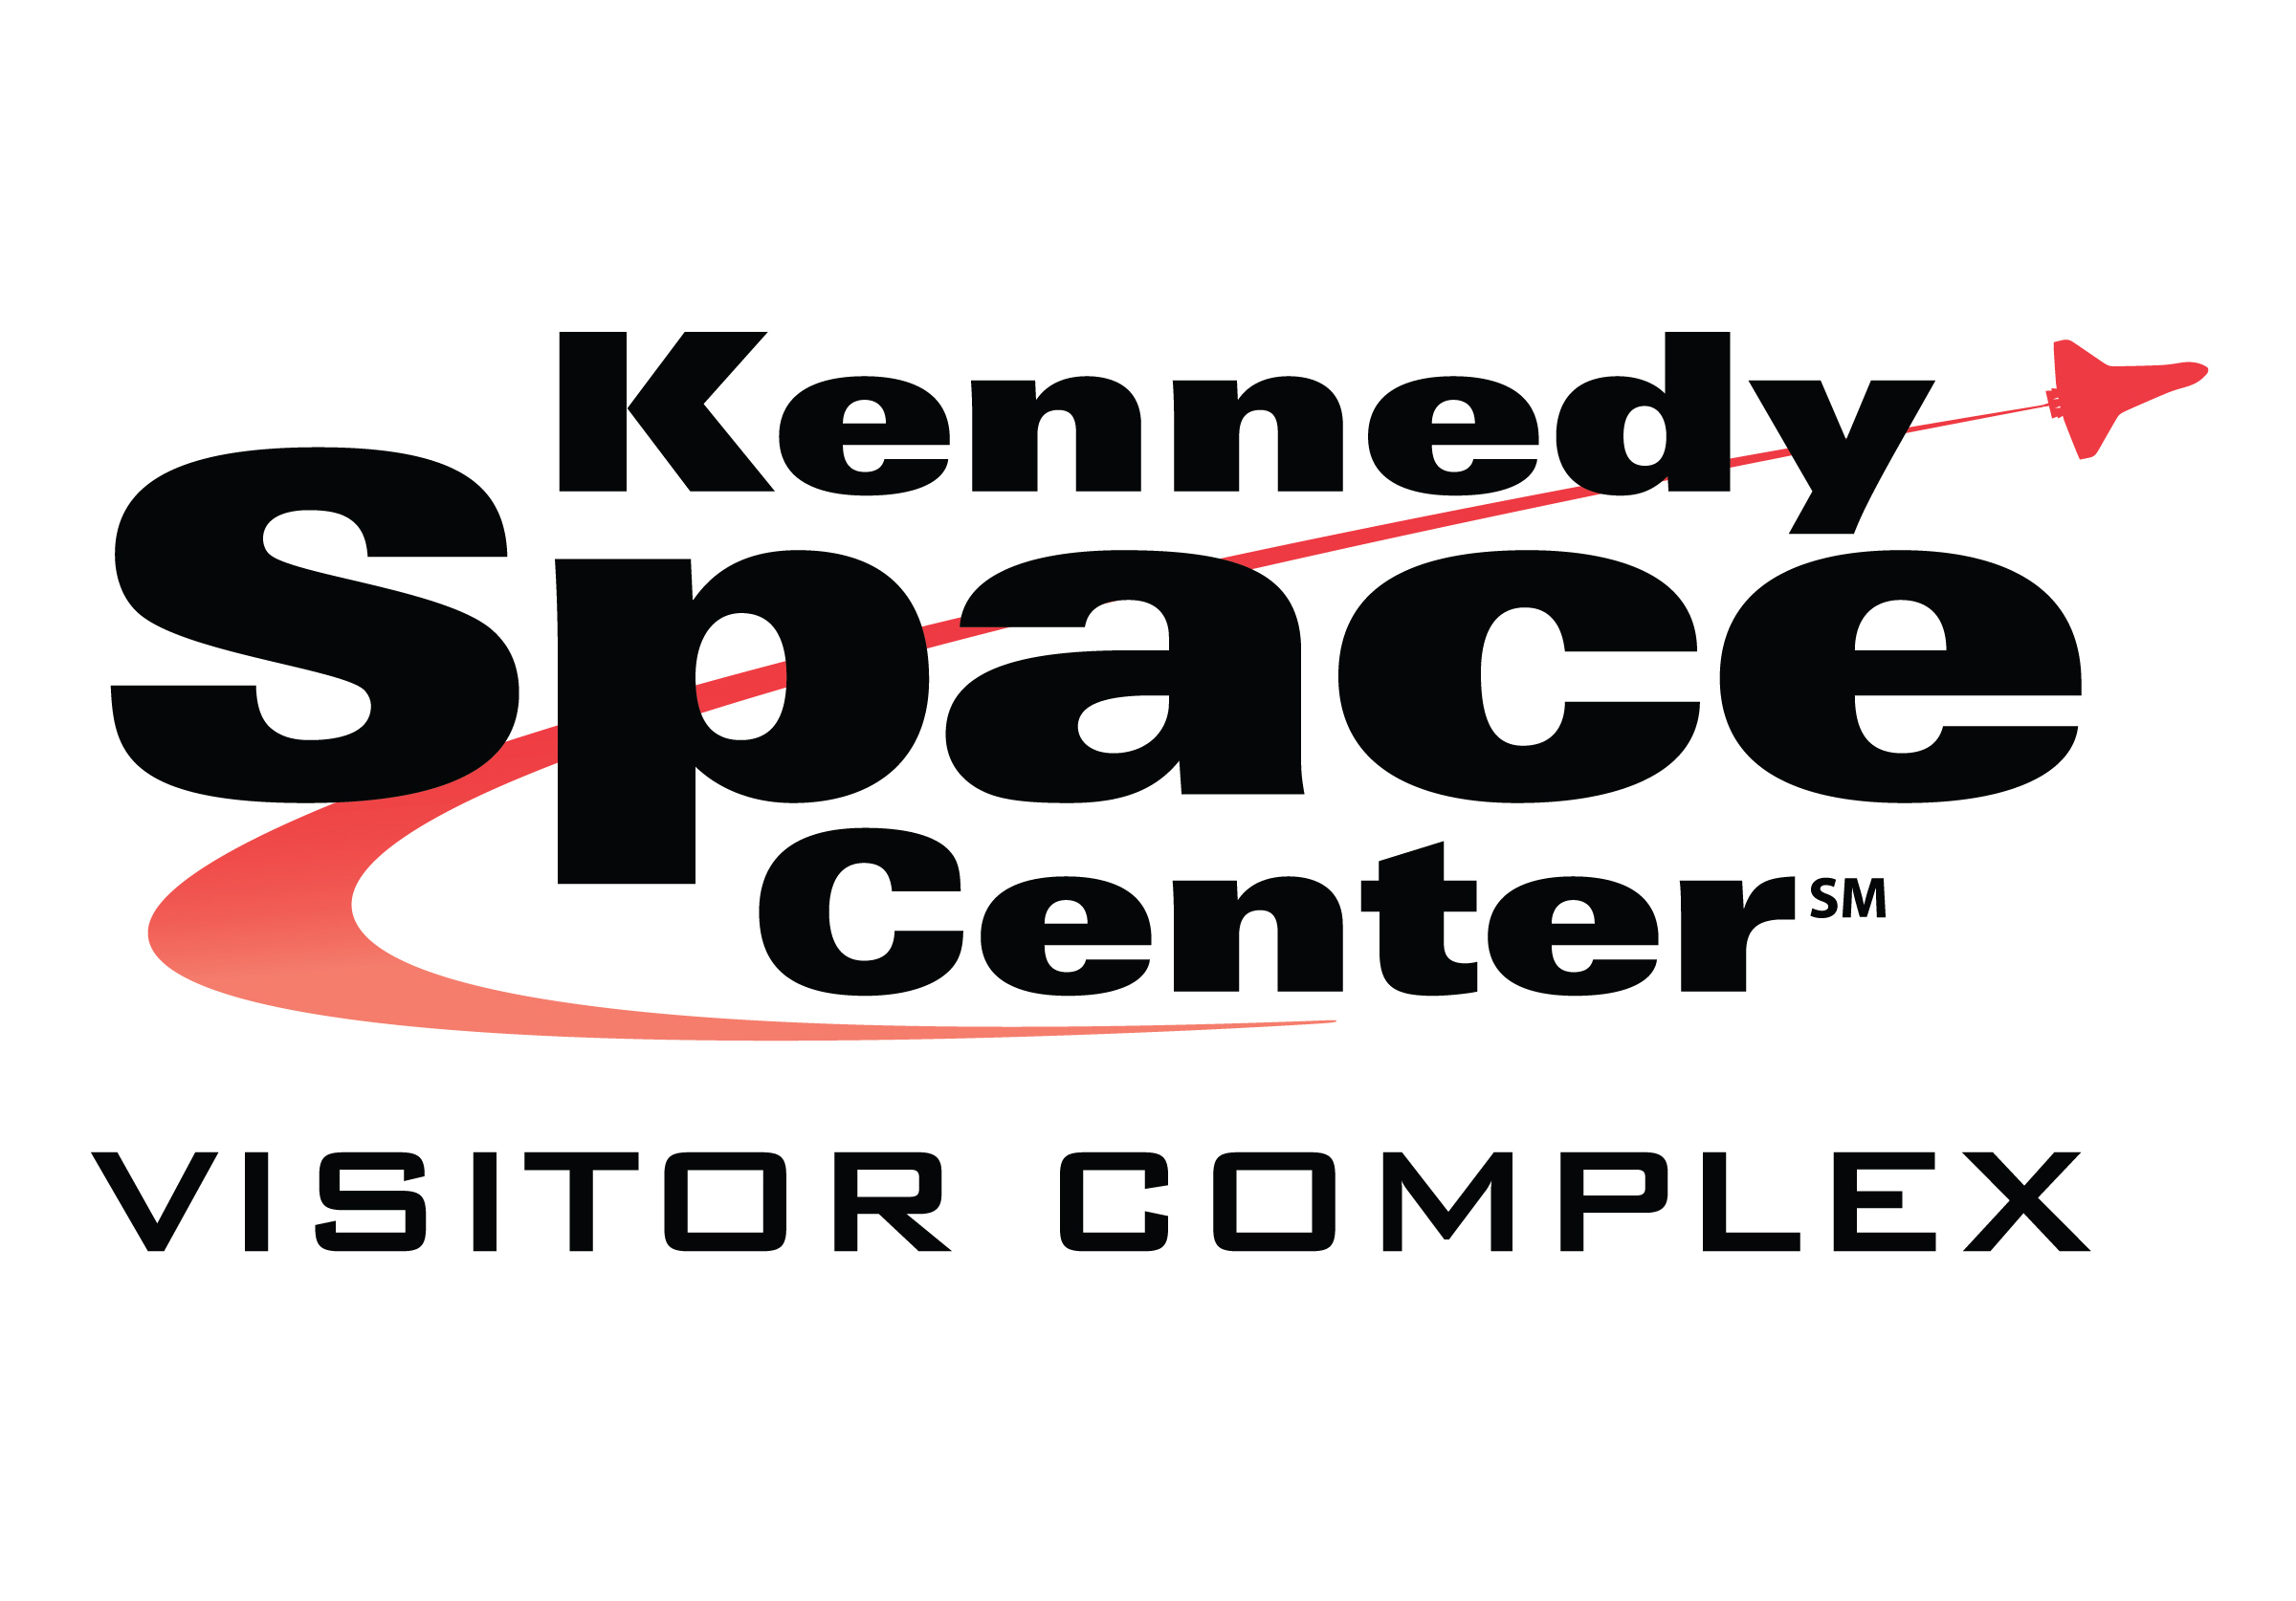 Kennedy Space Center logo